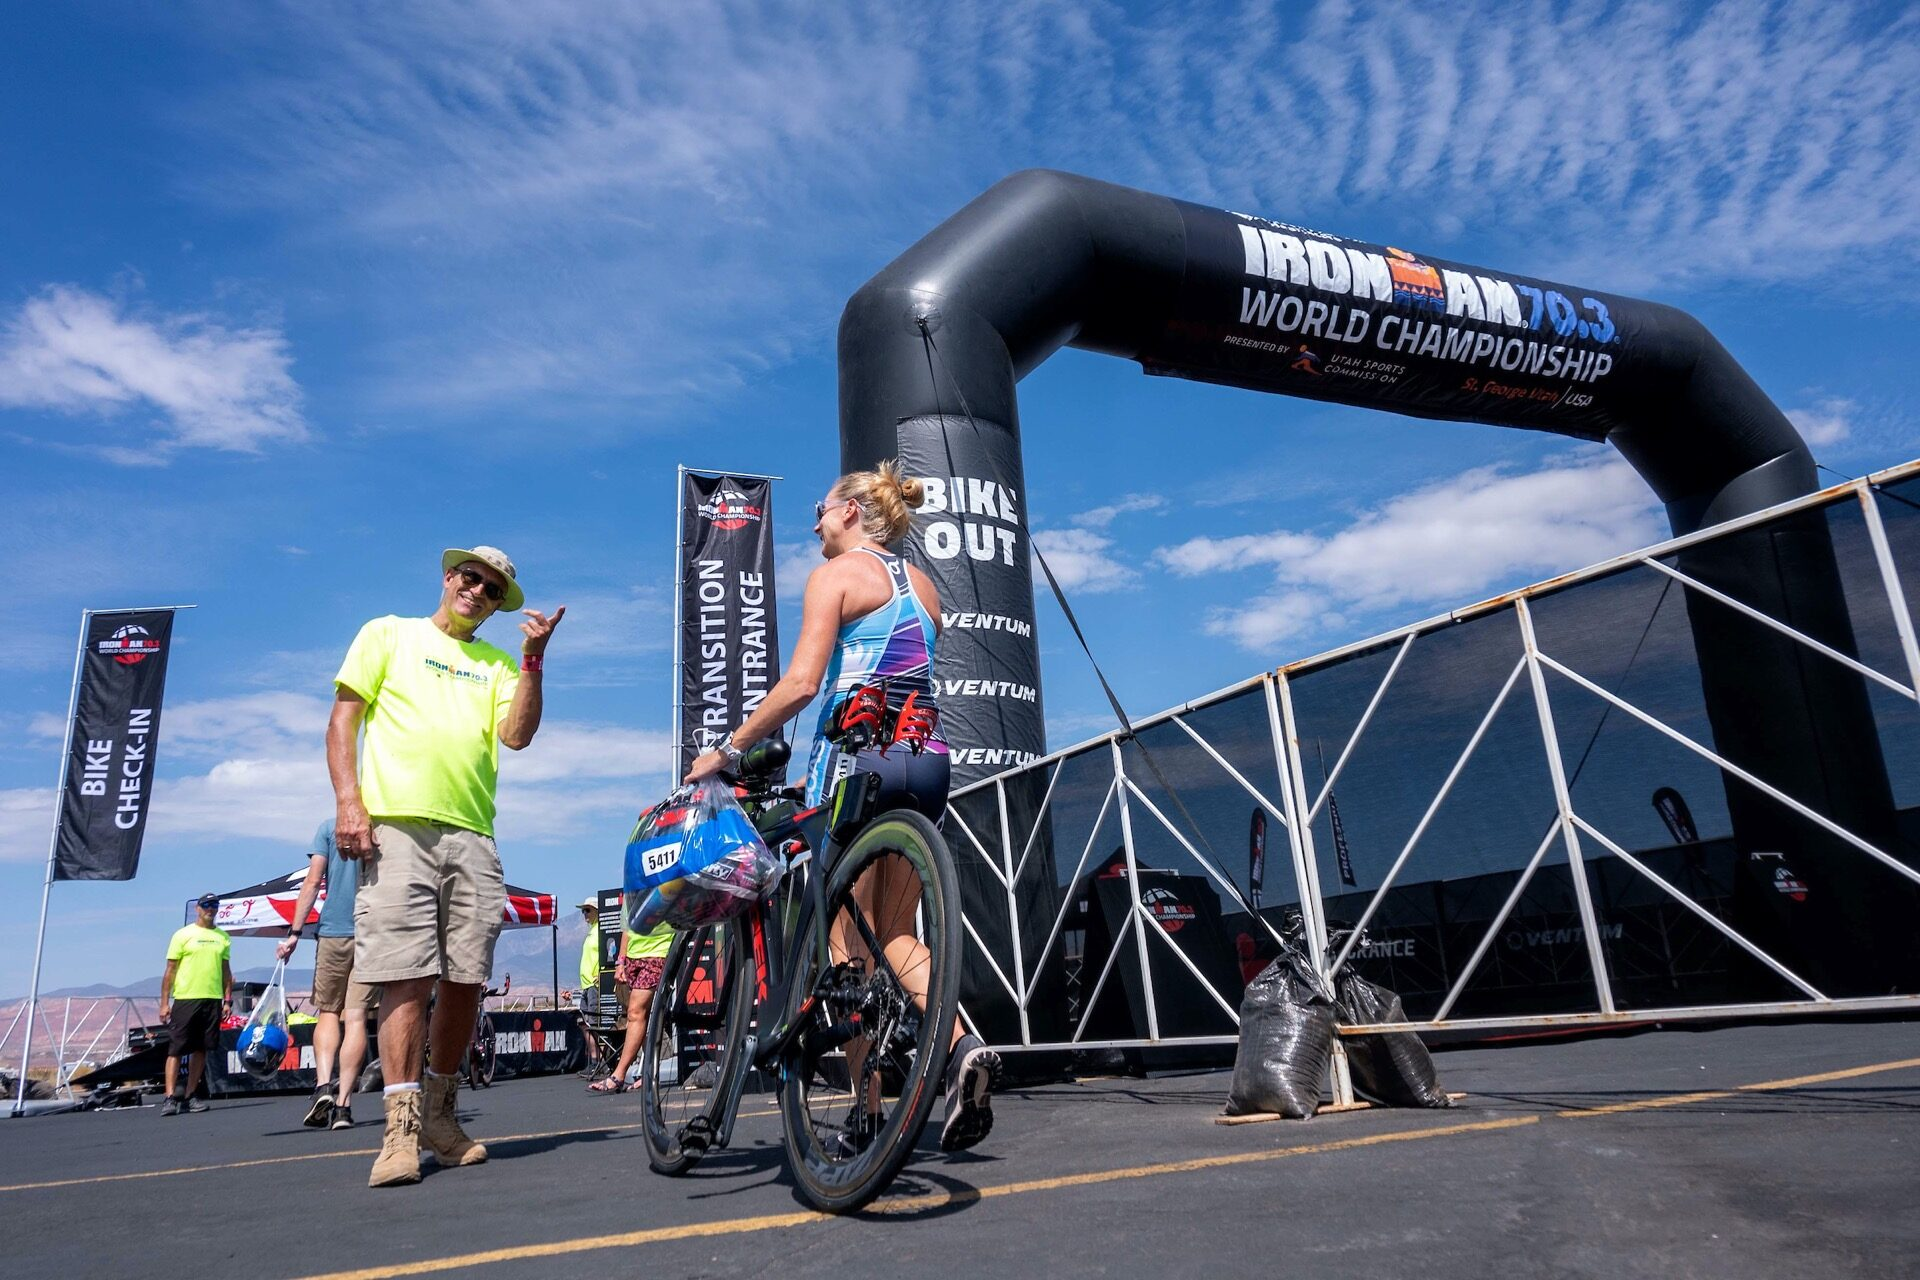 The final preparations have now been completed and athletes have headed to bed ahead of the 2021 Ironman 70.3 World Championship. We take a look back at Friday's action in St. George ahead of the big race.